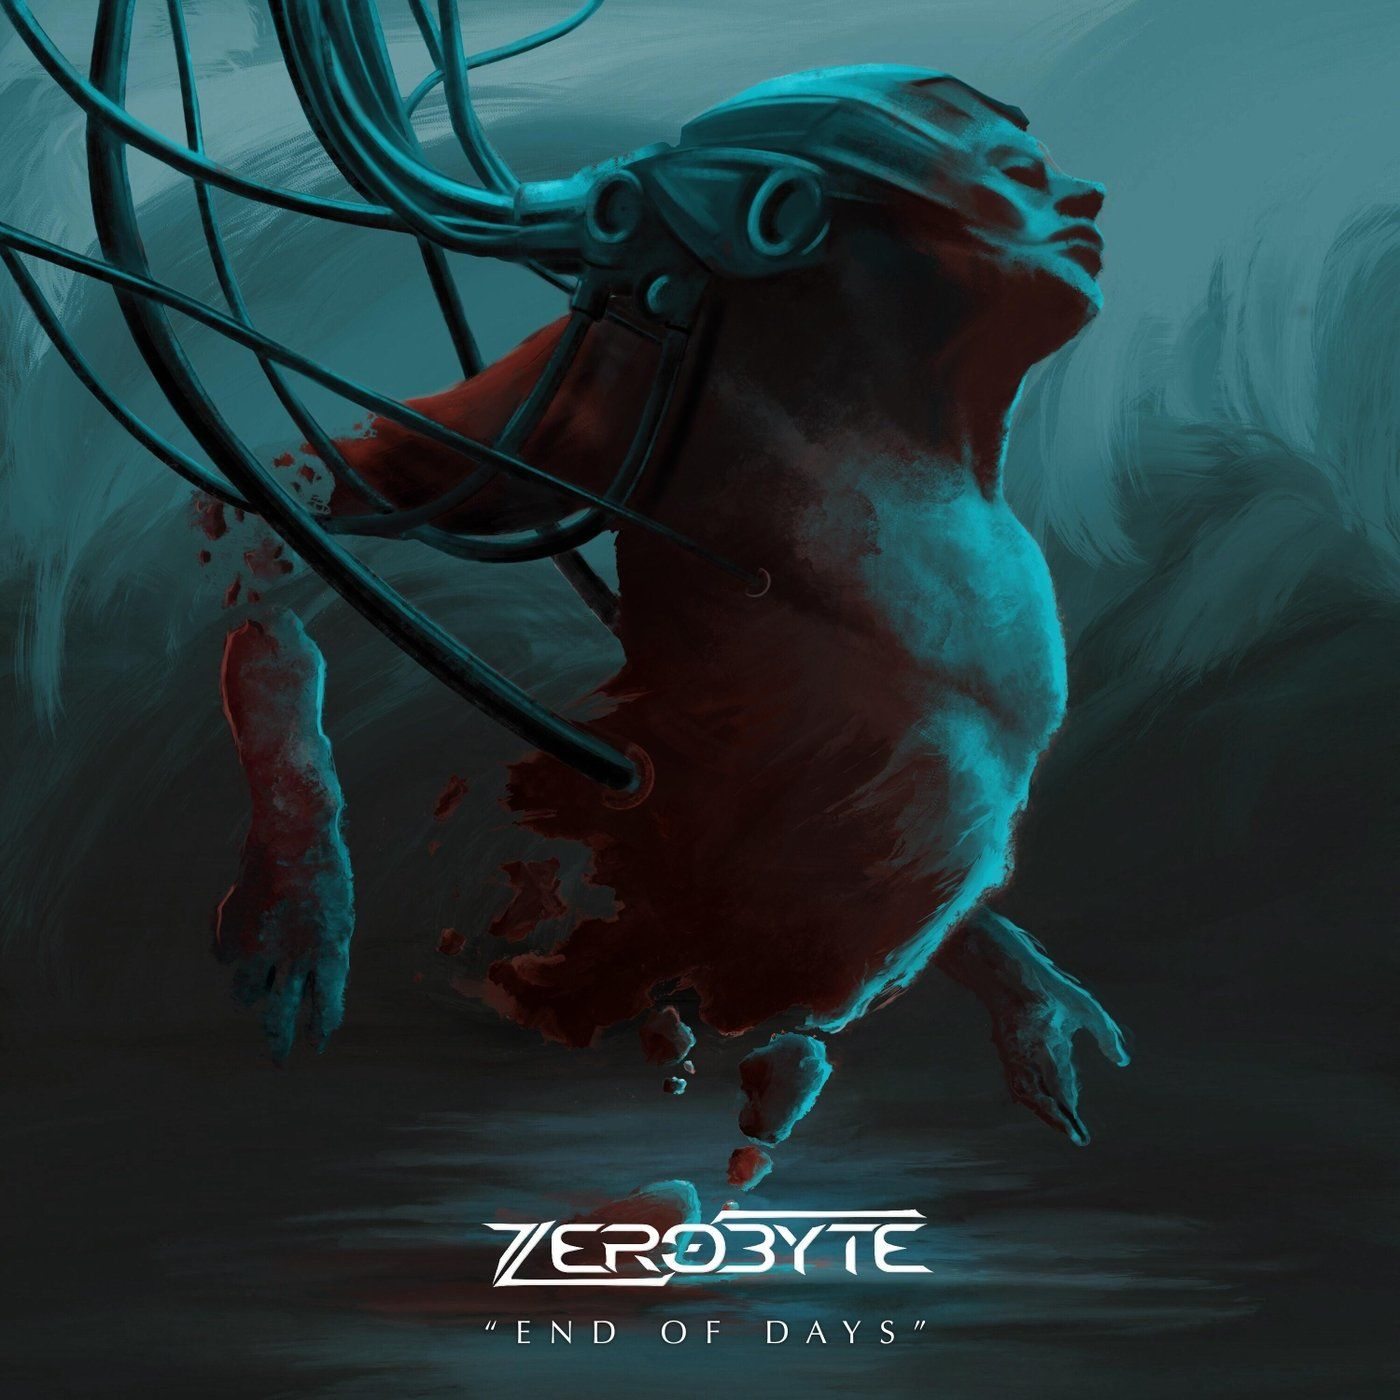 Zerobyte - End of Days [single] (2020)